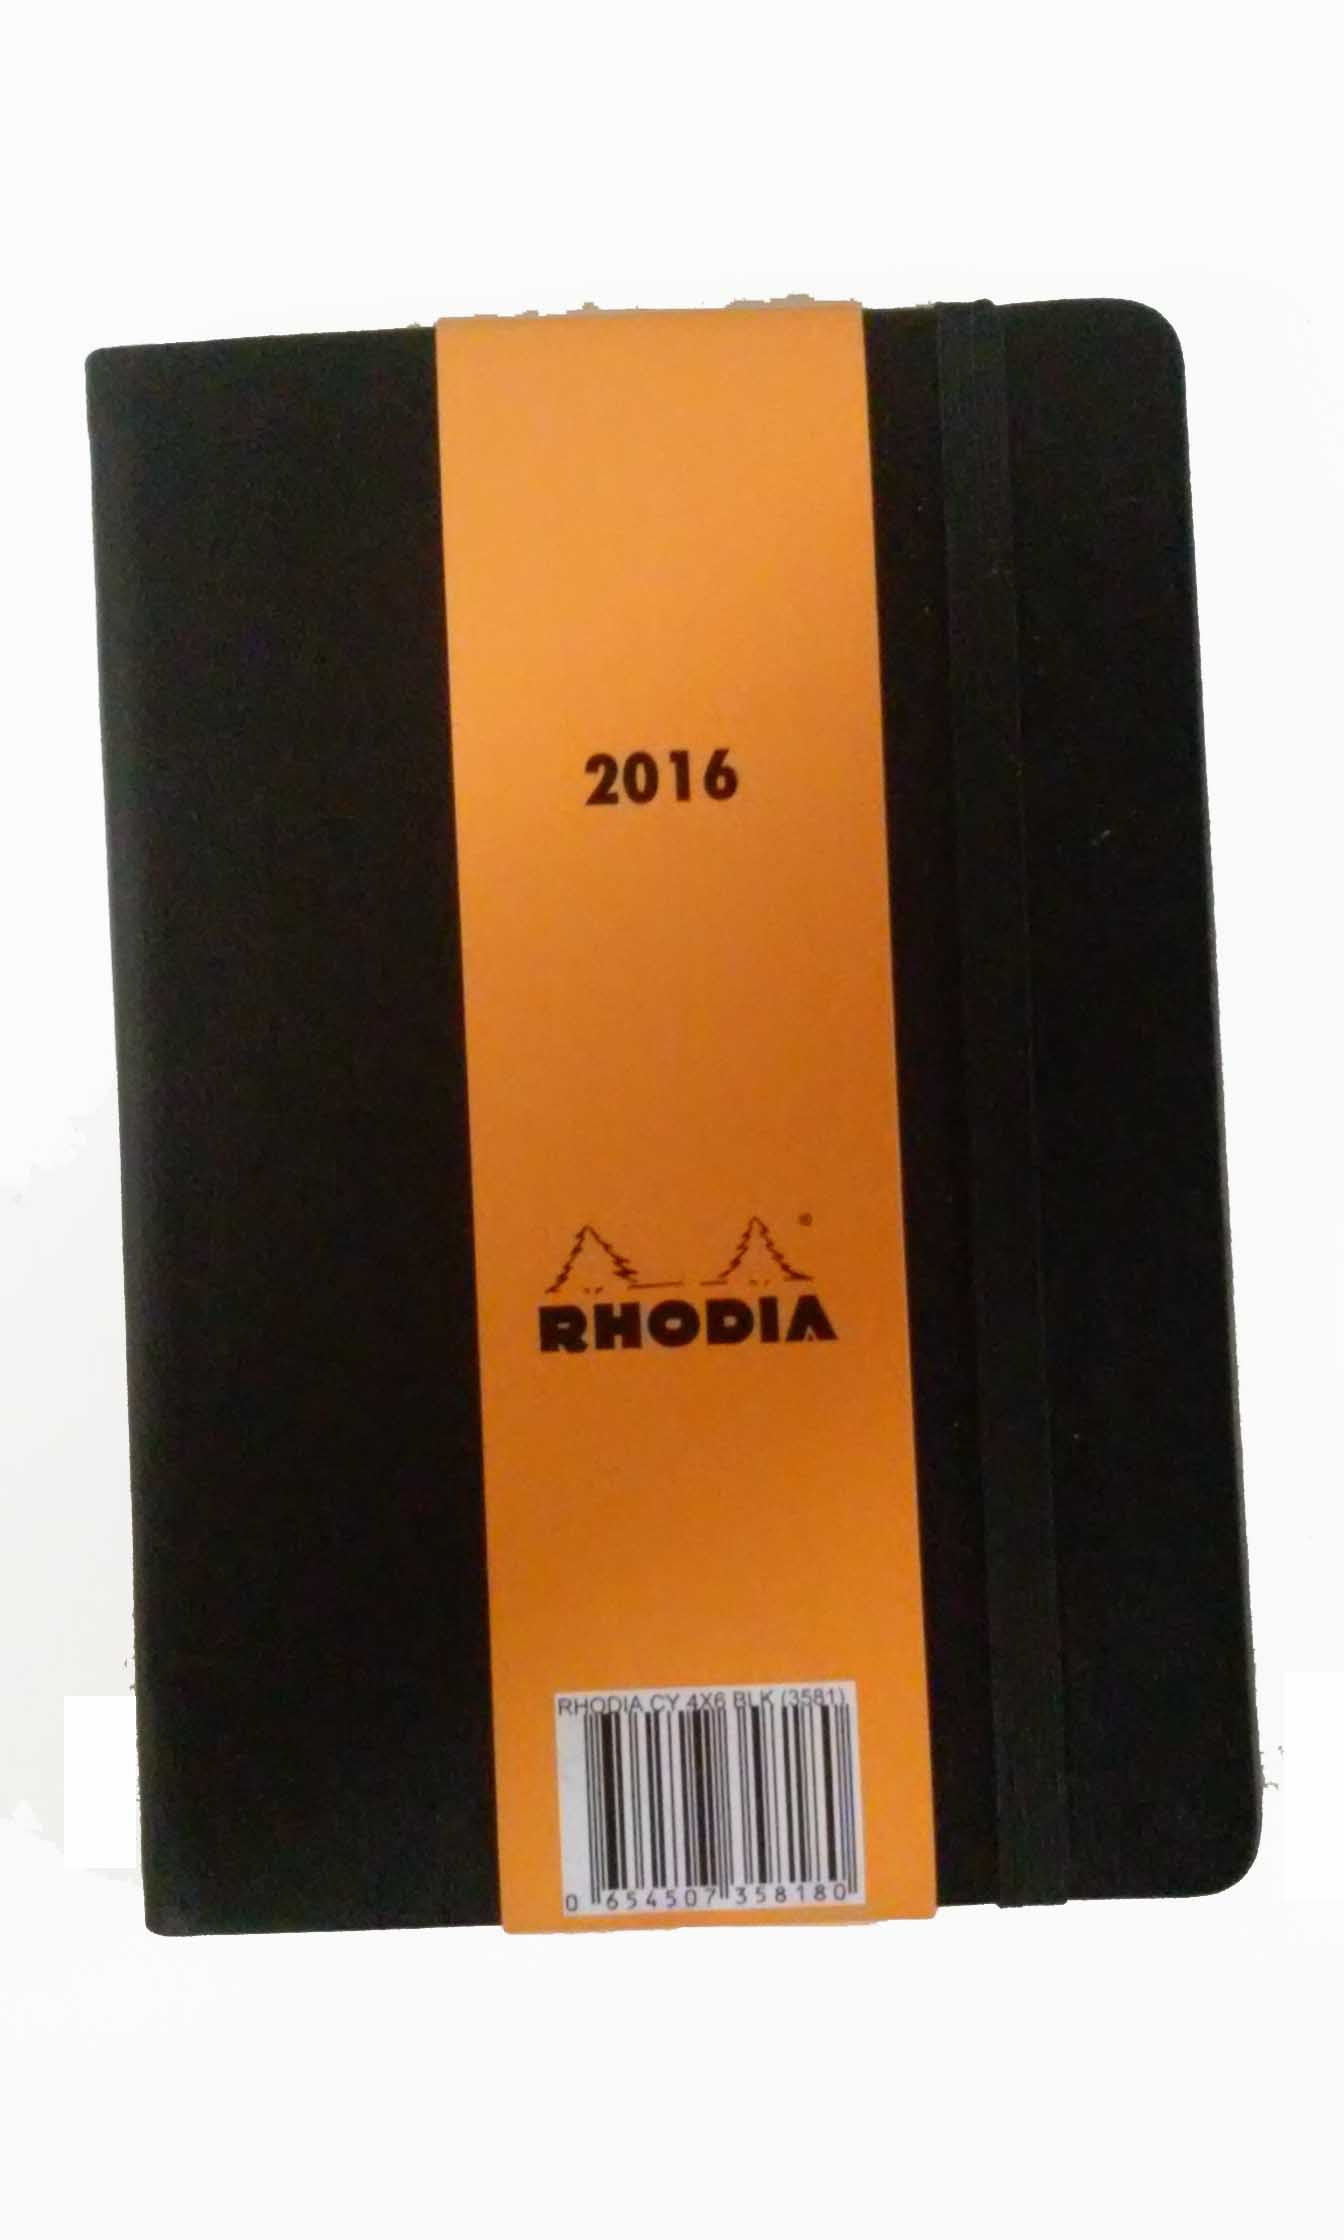 Rhodia For 2016 Diary with Note Paper 4'' x 6'' (Black)